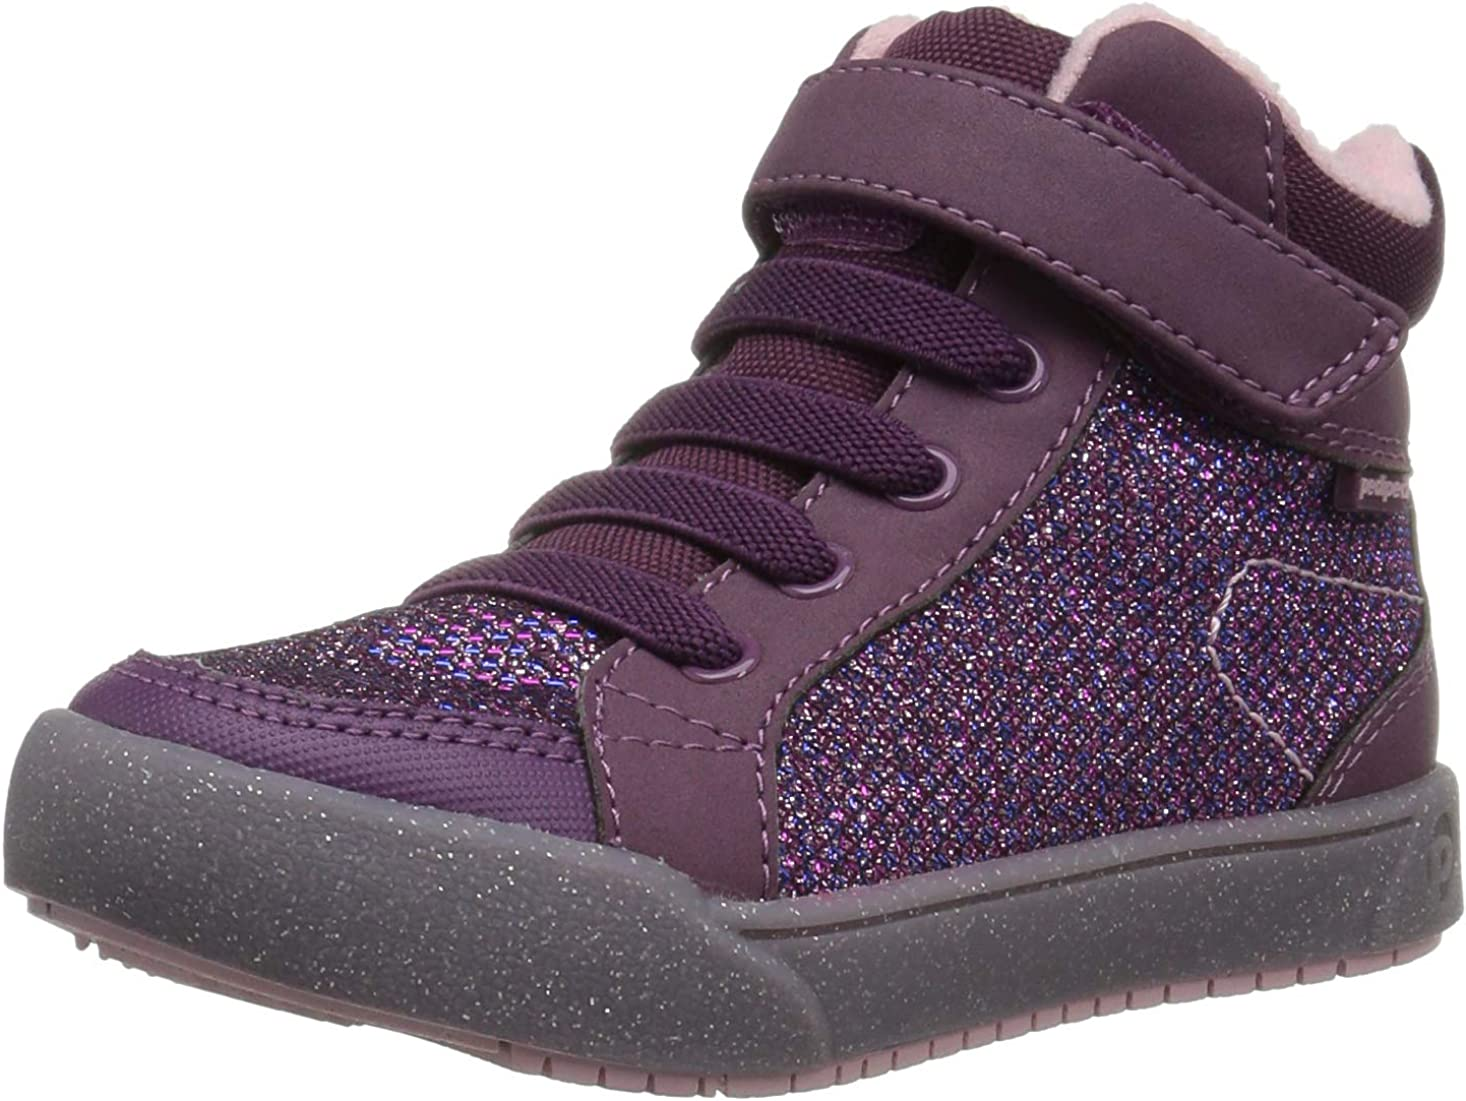 pediped Unisex-Child Logan Sneaker Sales results No. 1 High order